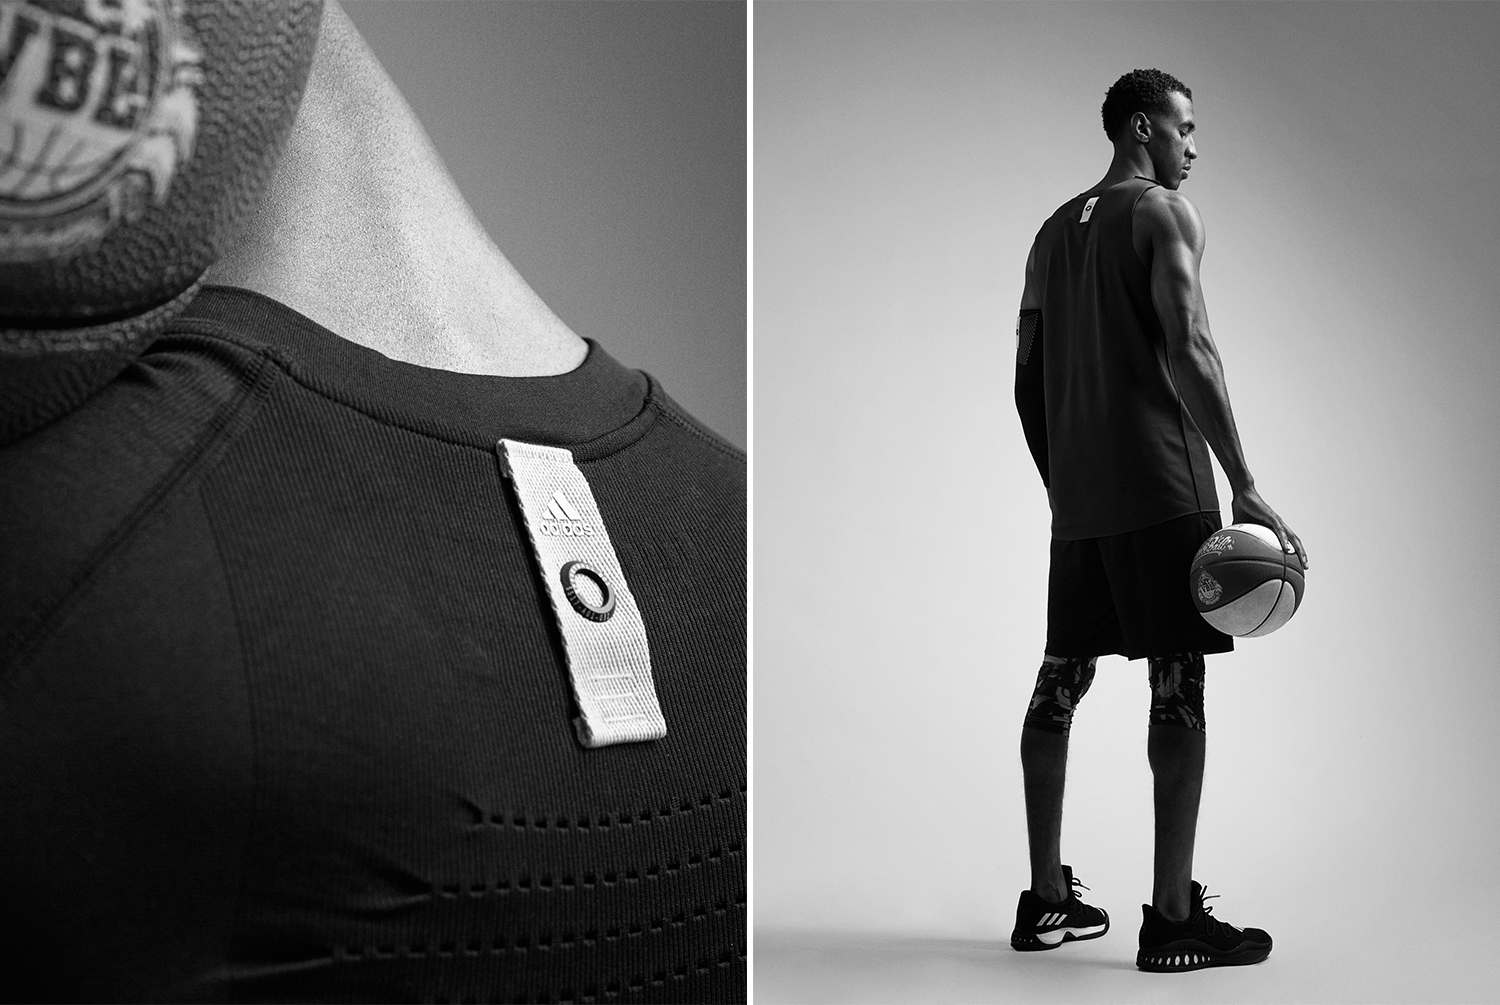 A detail shot and an outfit shot of a Veniceball League player with in an Adidas outfit photographed by Maximilian Baier